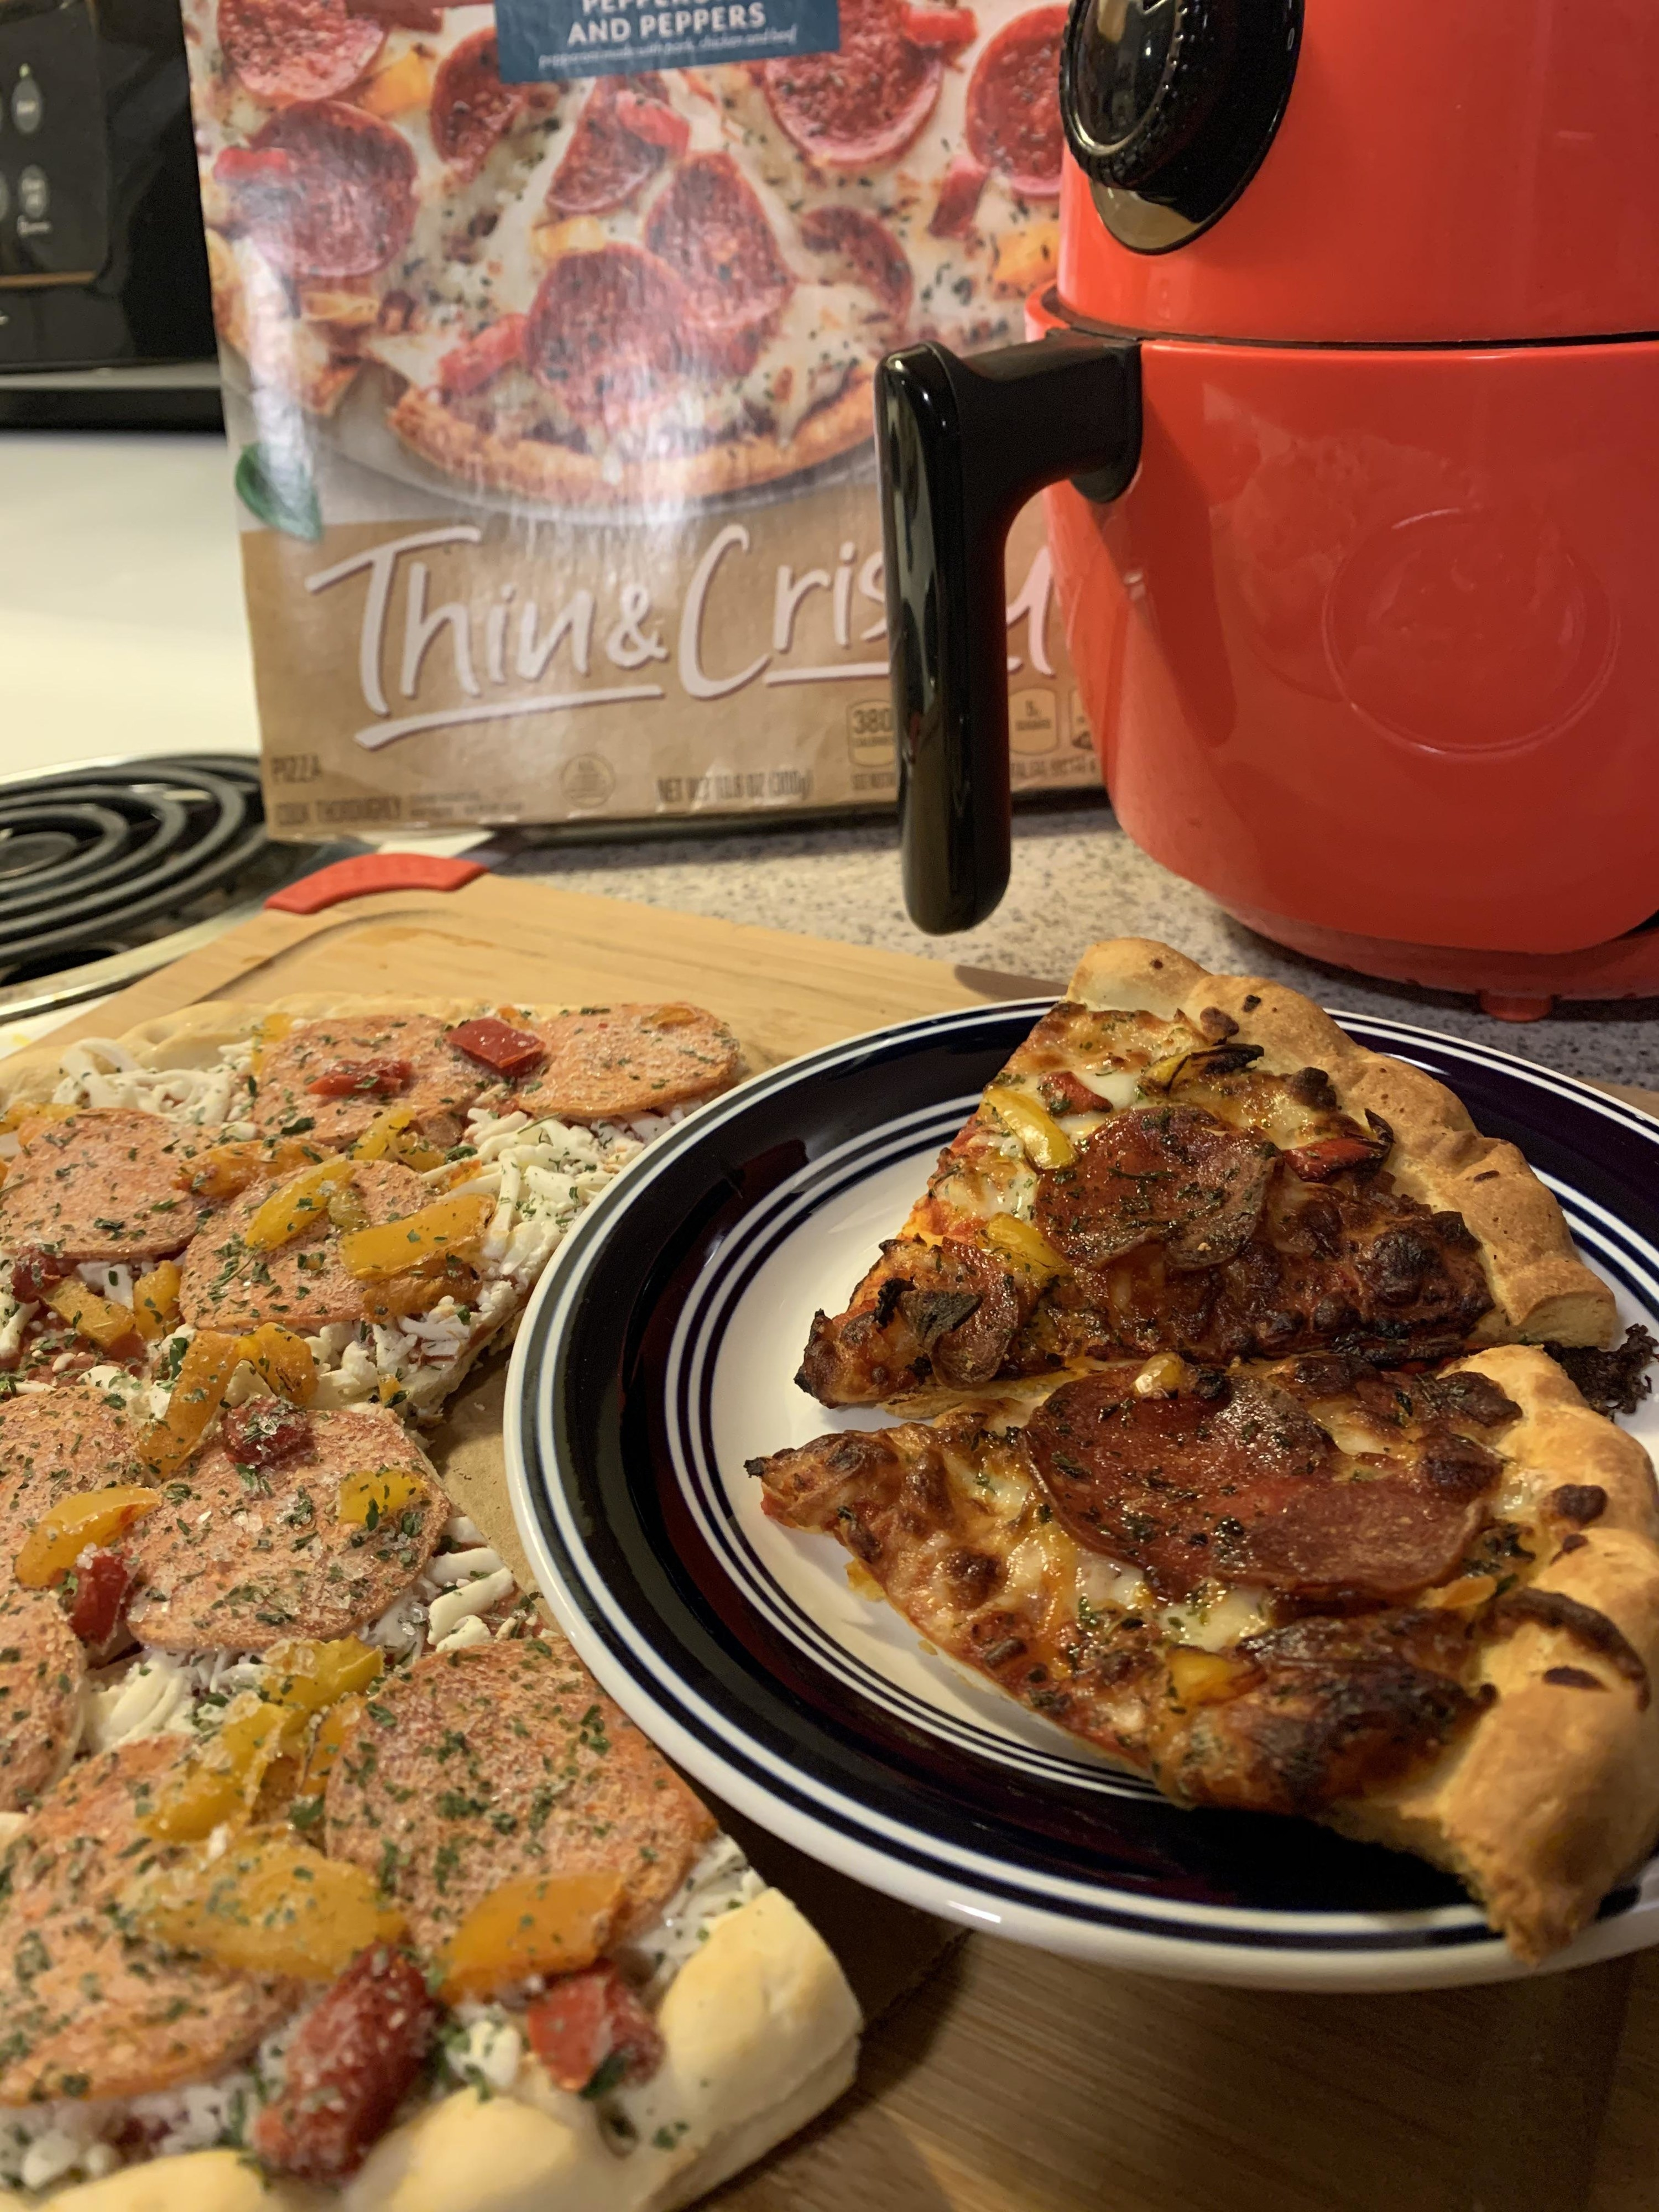 Frozen pizza and two slices that were heated up in the air fryer.